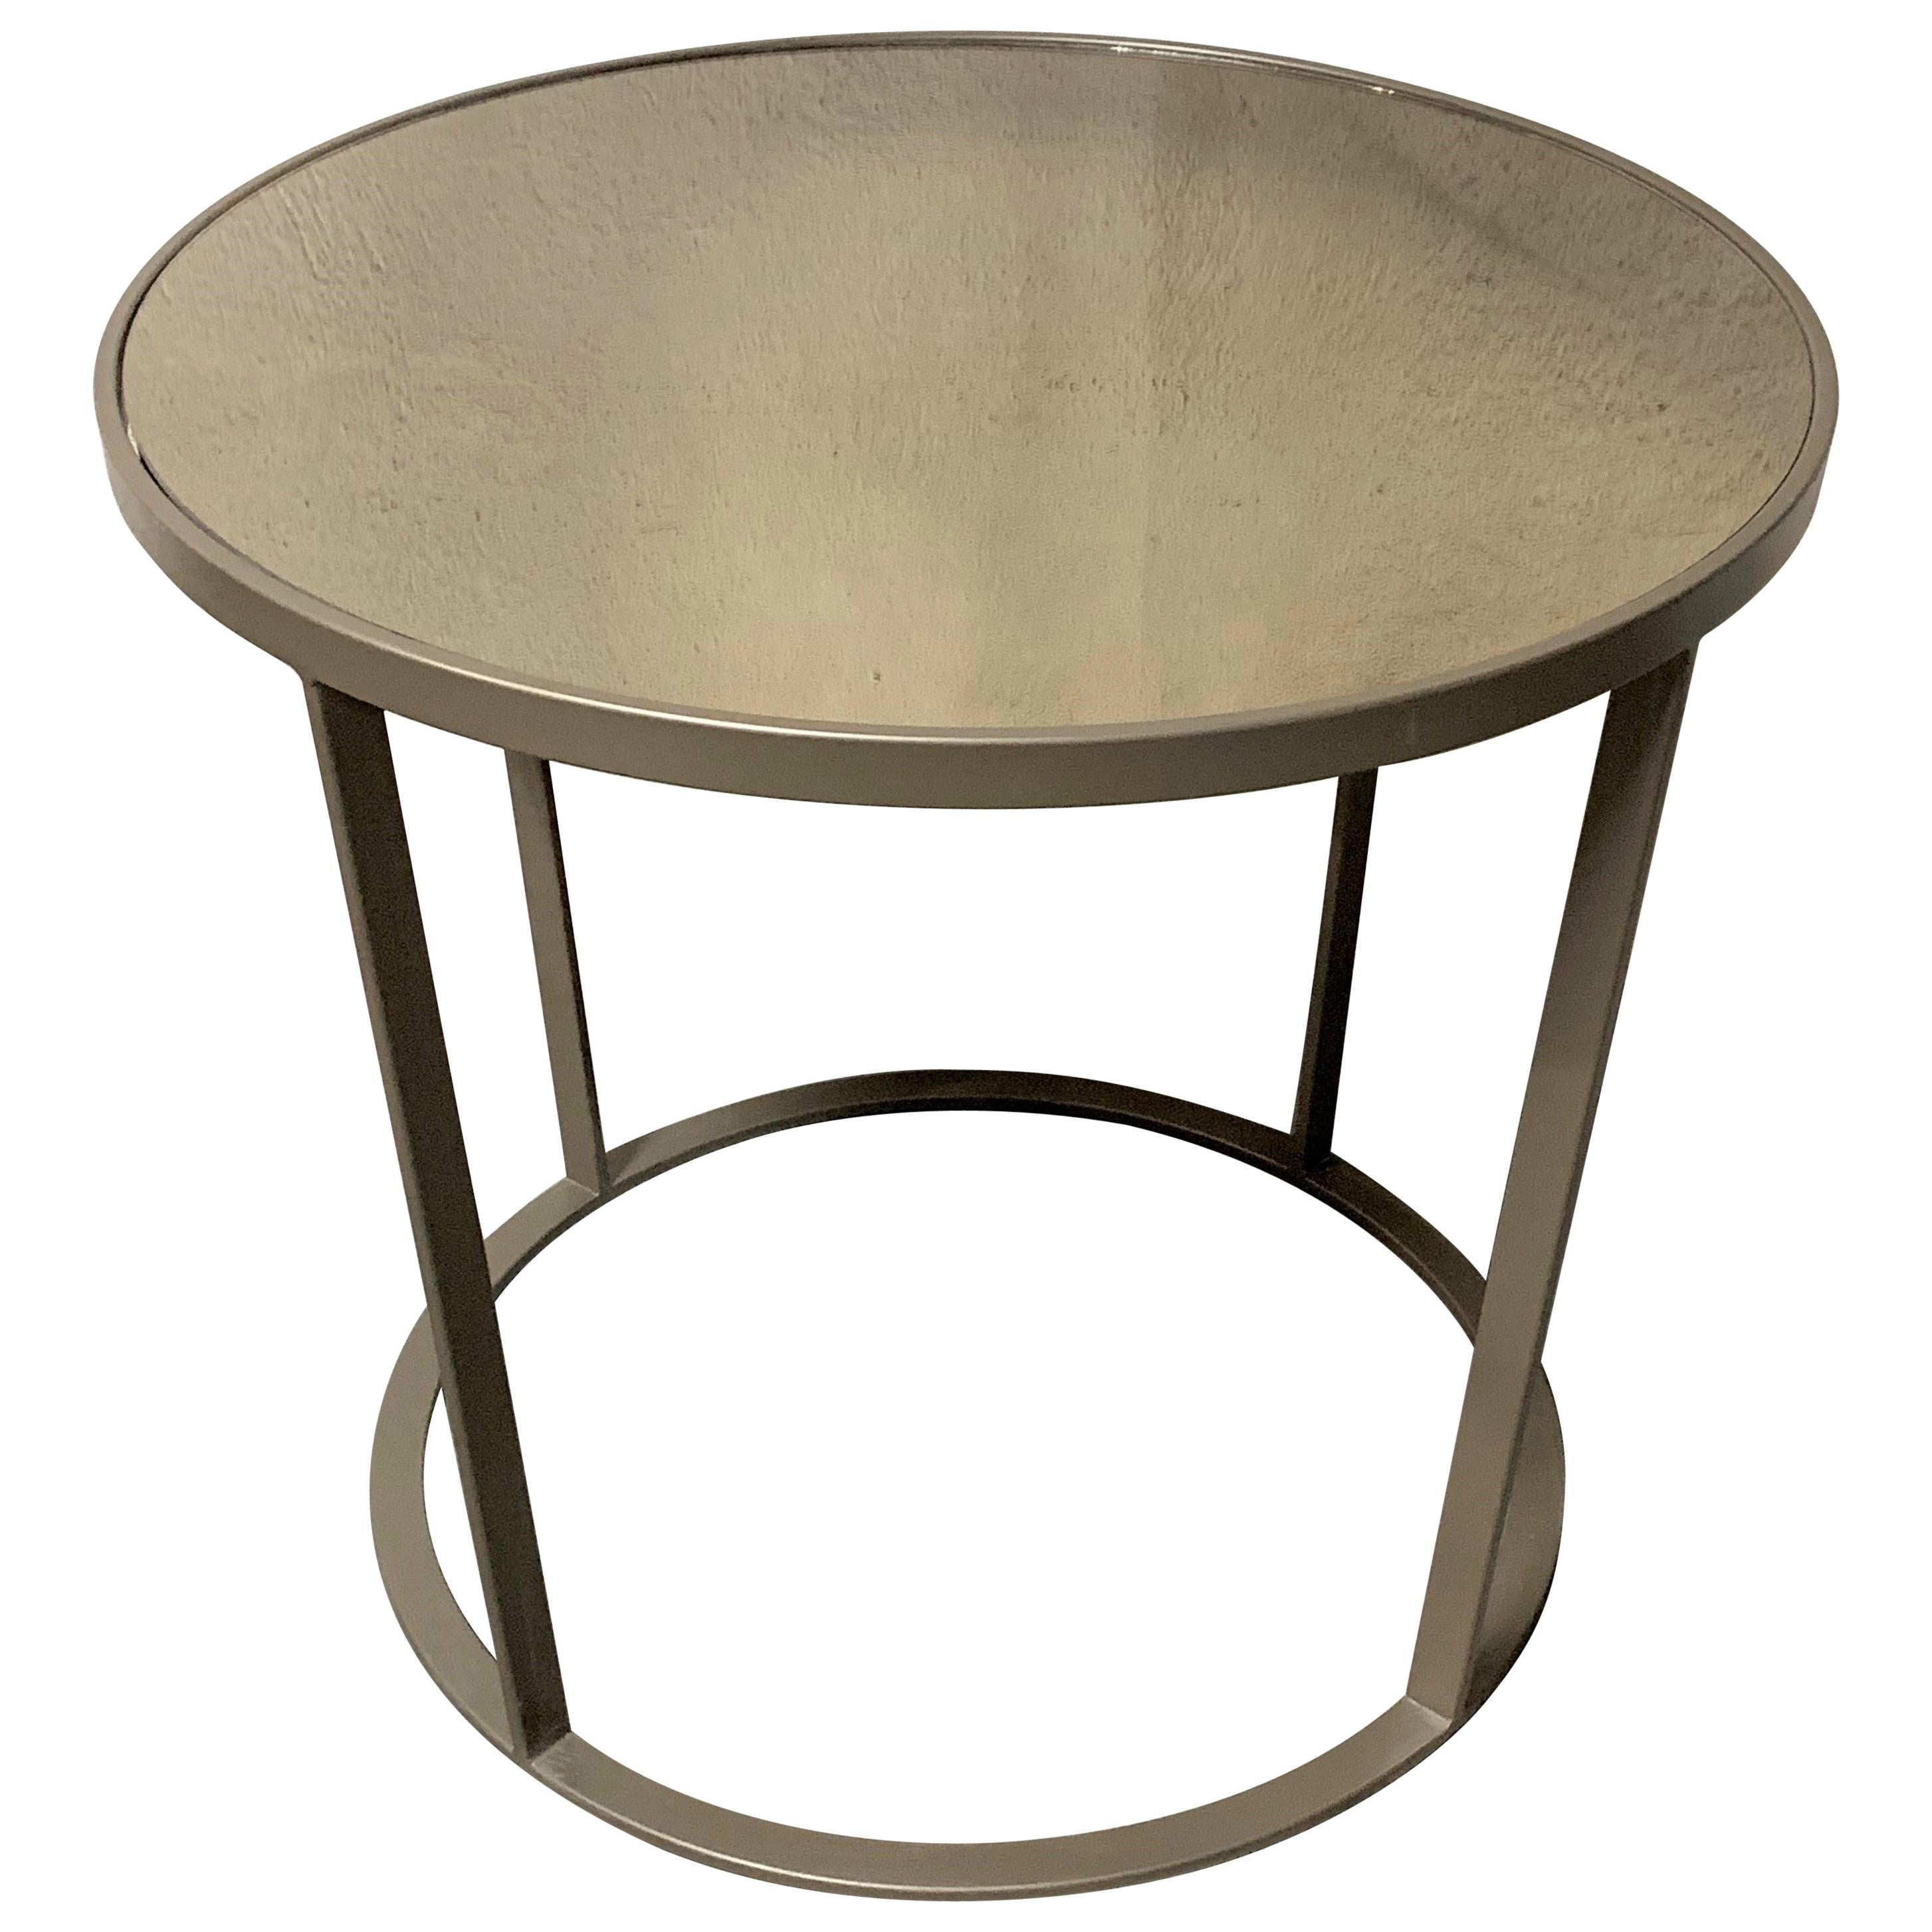 Coffee And Side Tables New Coffee Or Side Table In Champagne Color With Smoked Mirrored Glass Top